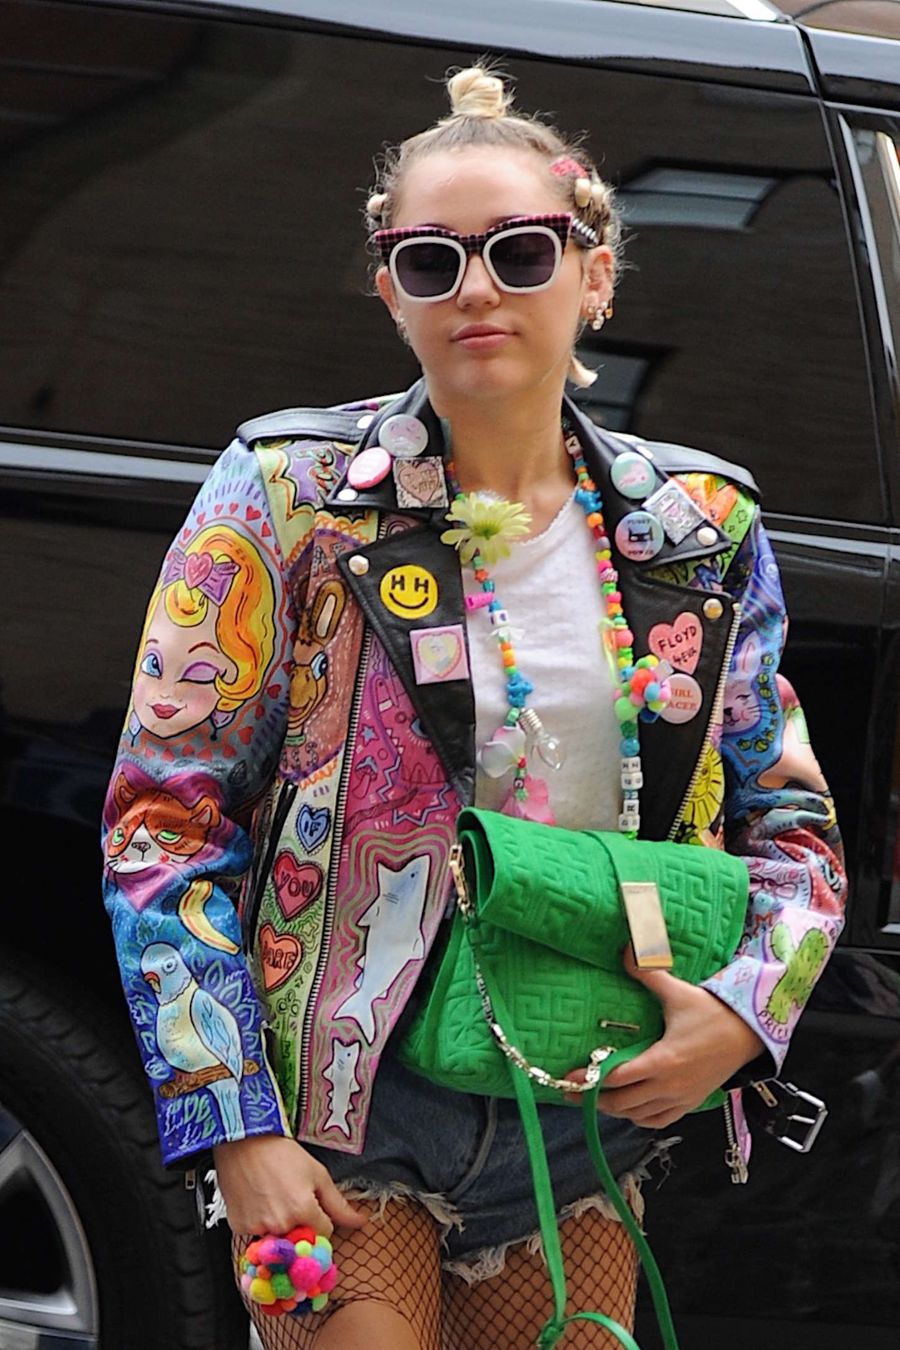 Miley Cyrus' Ripped Fishnets: Stylin' Or Sloppy?